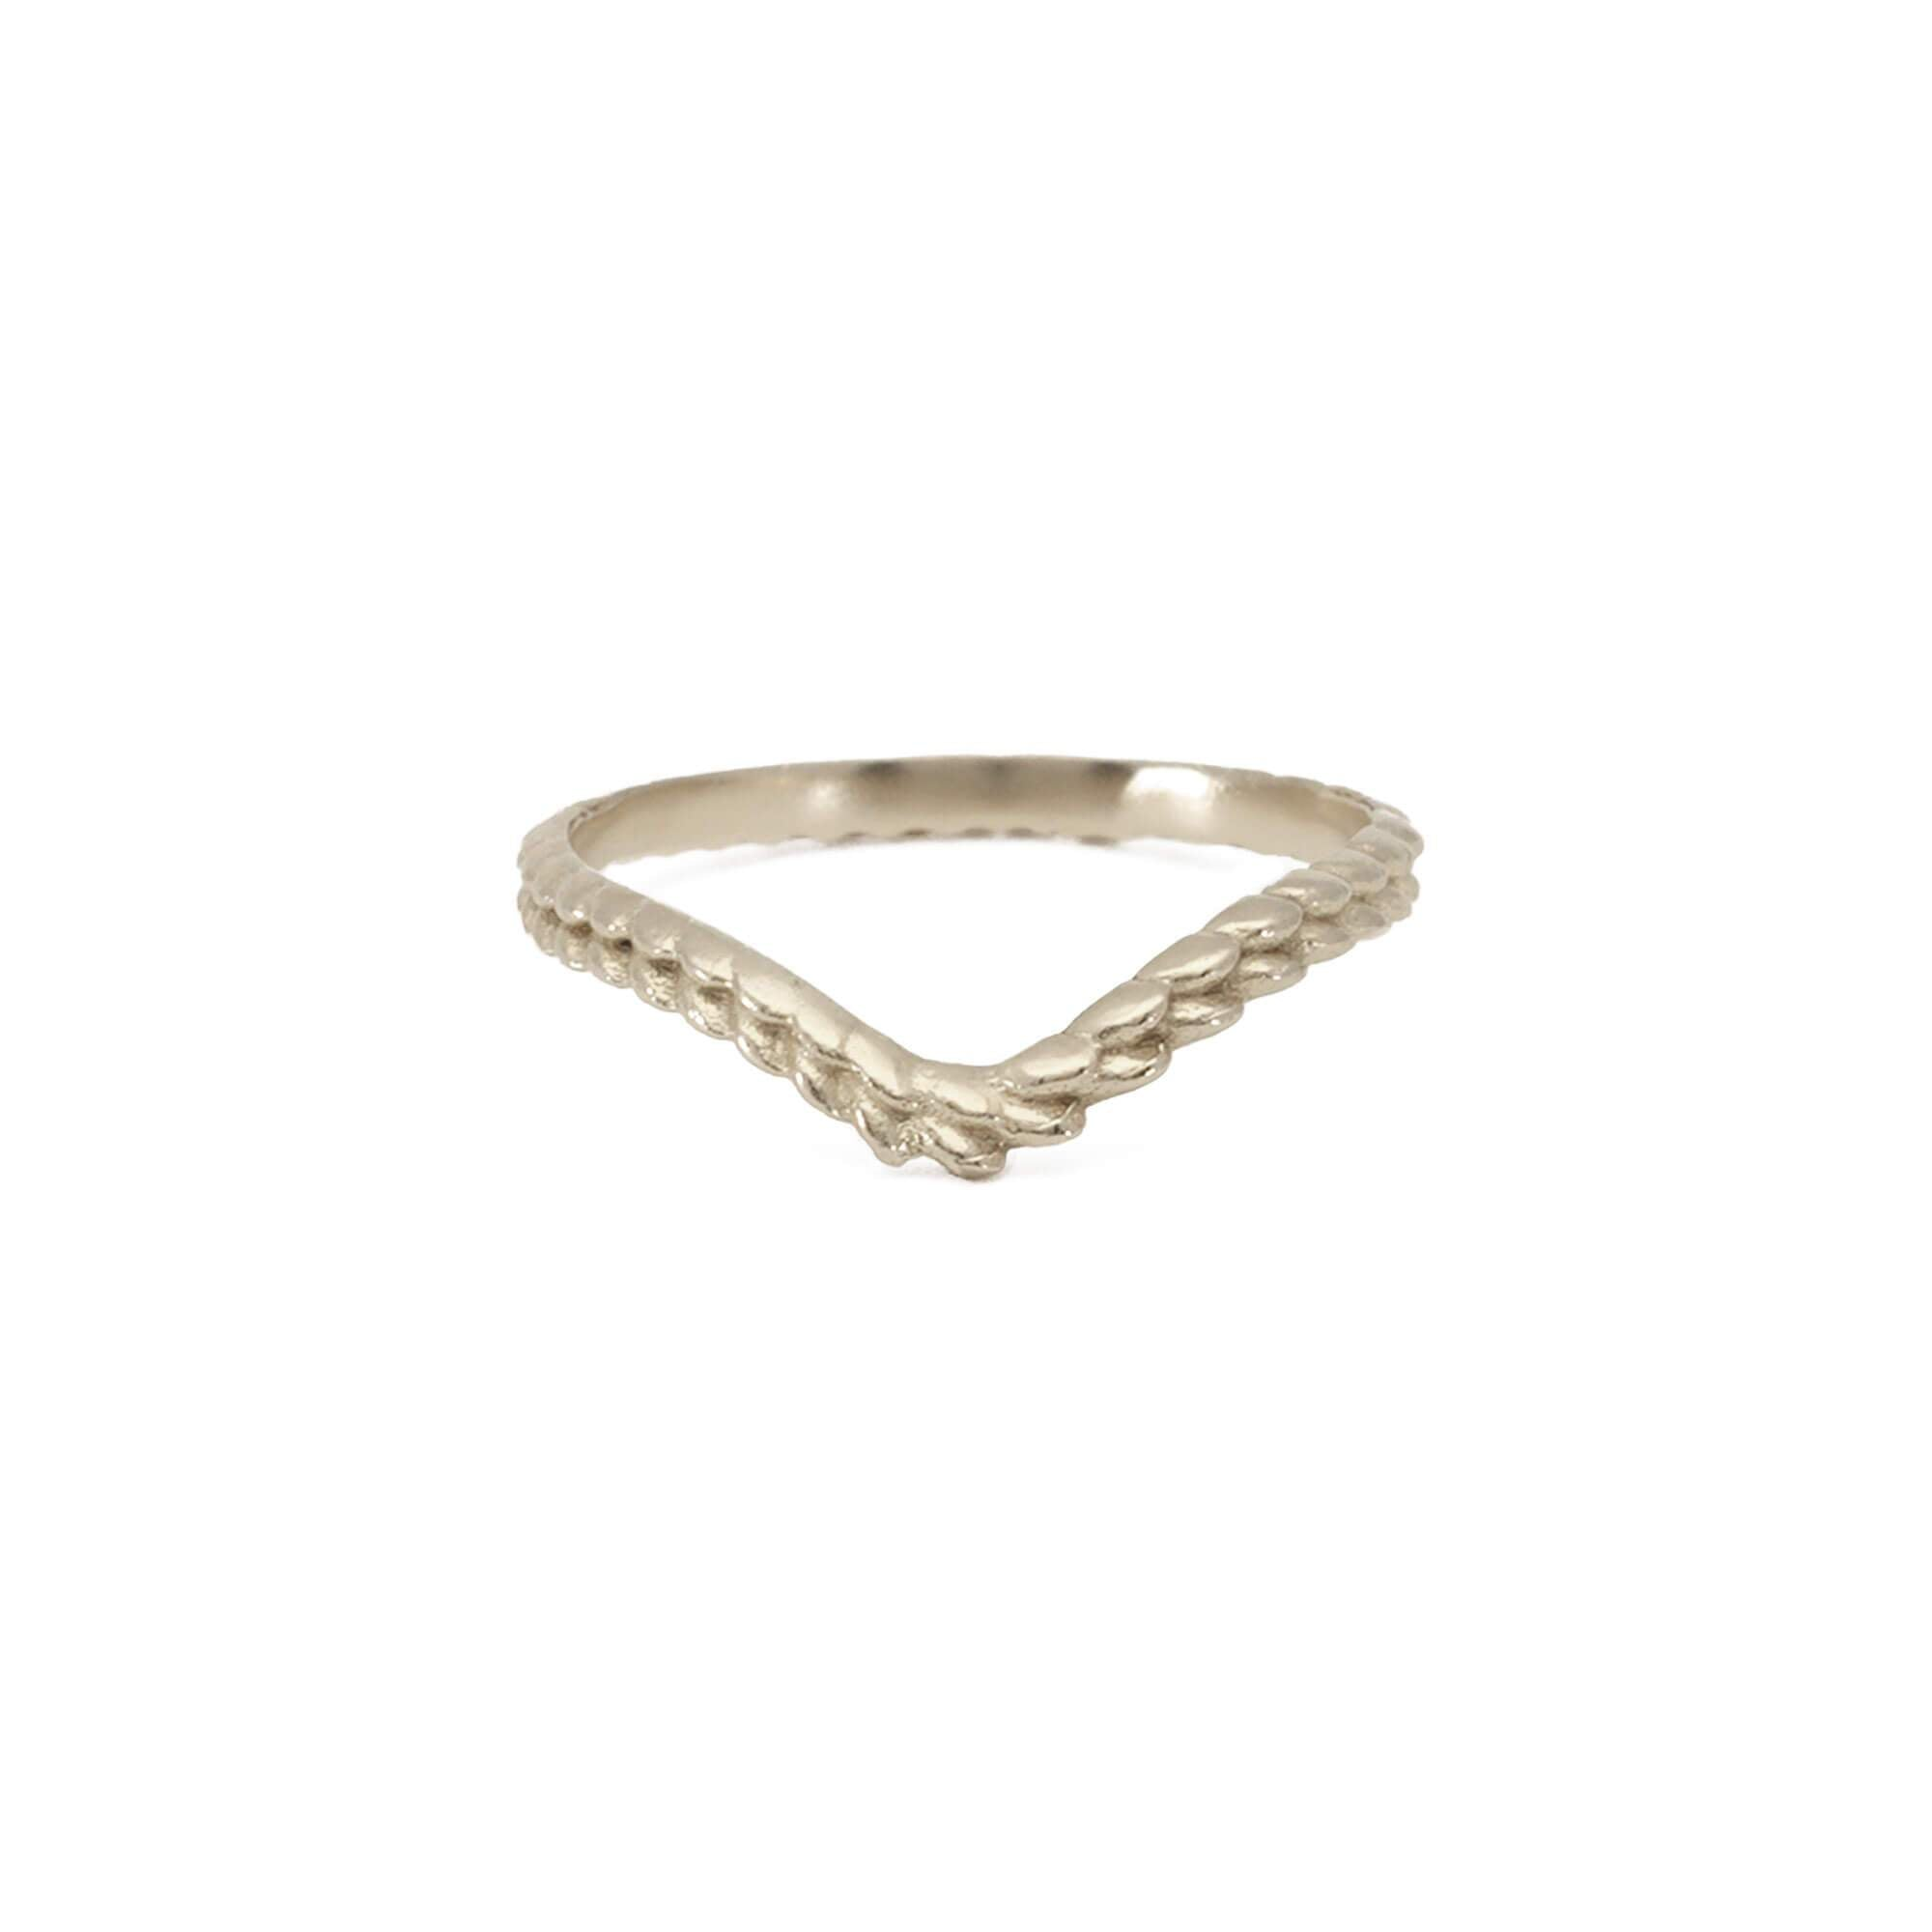 Tagmata Sterling Silver Ring